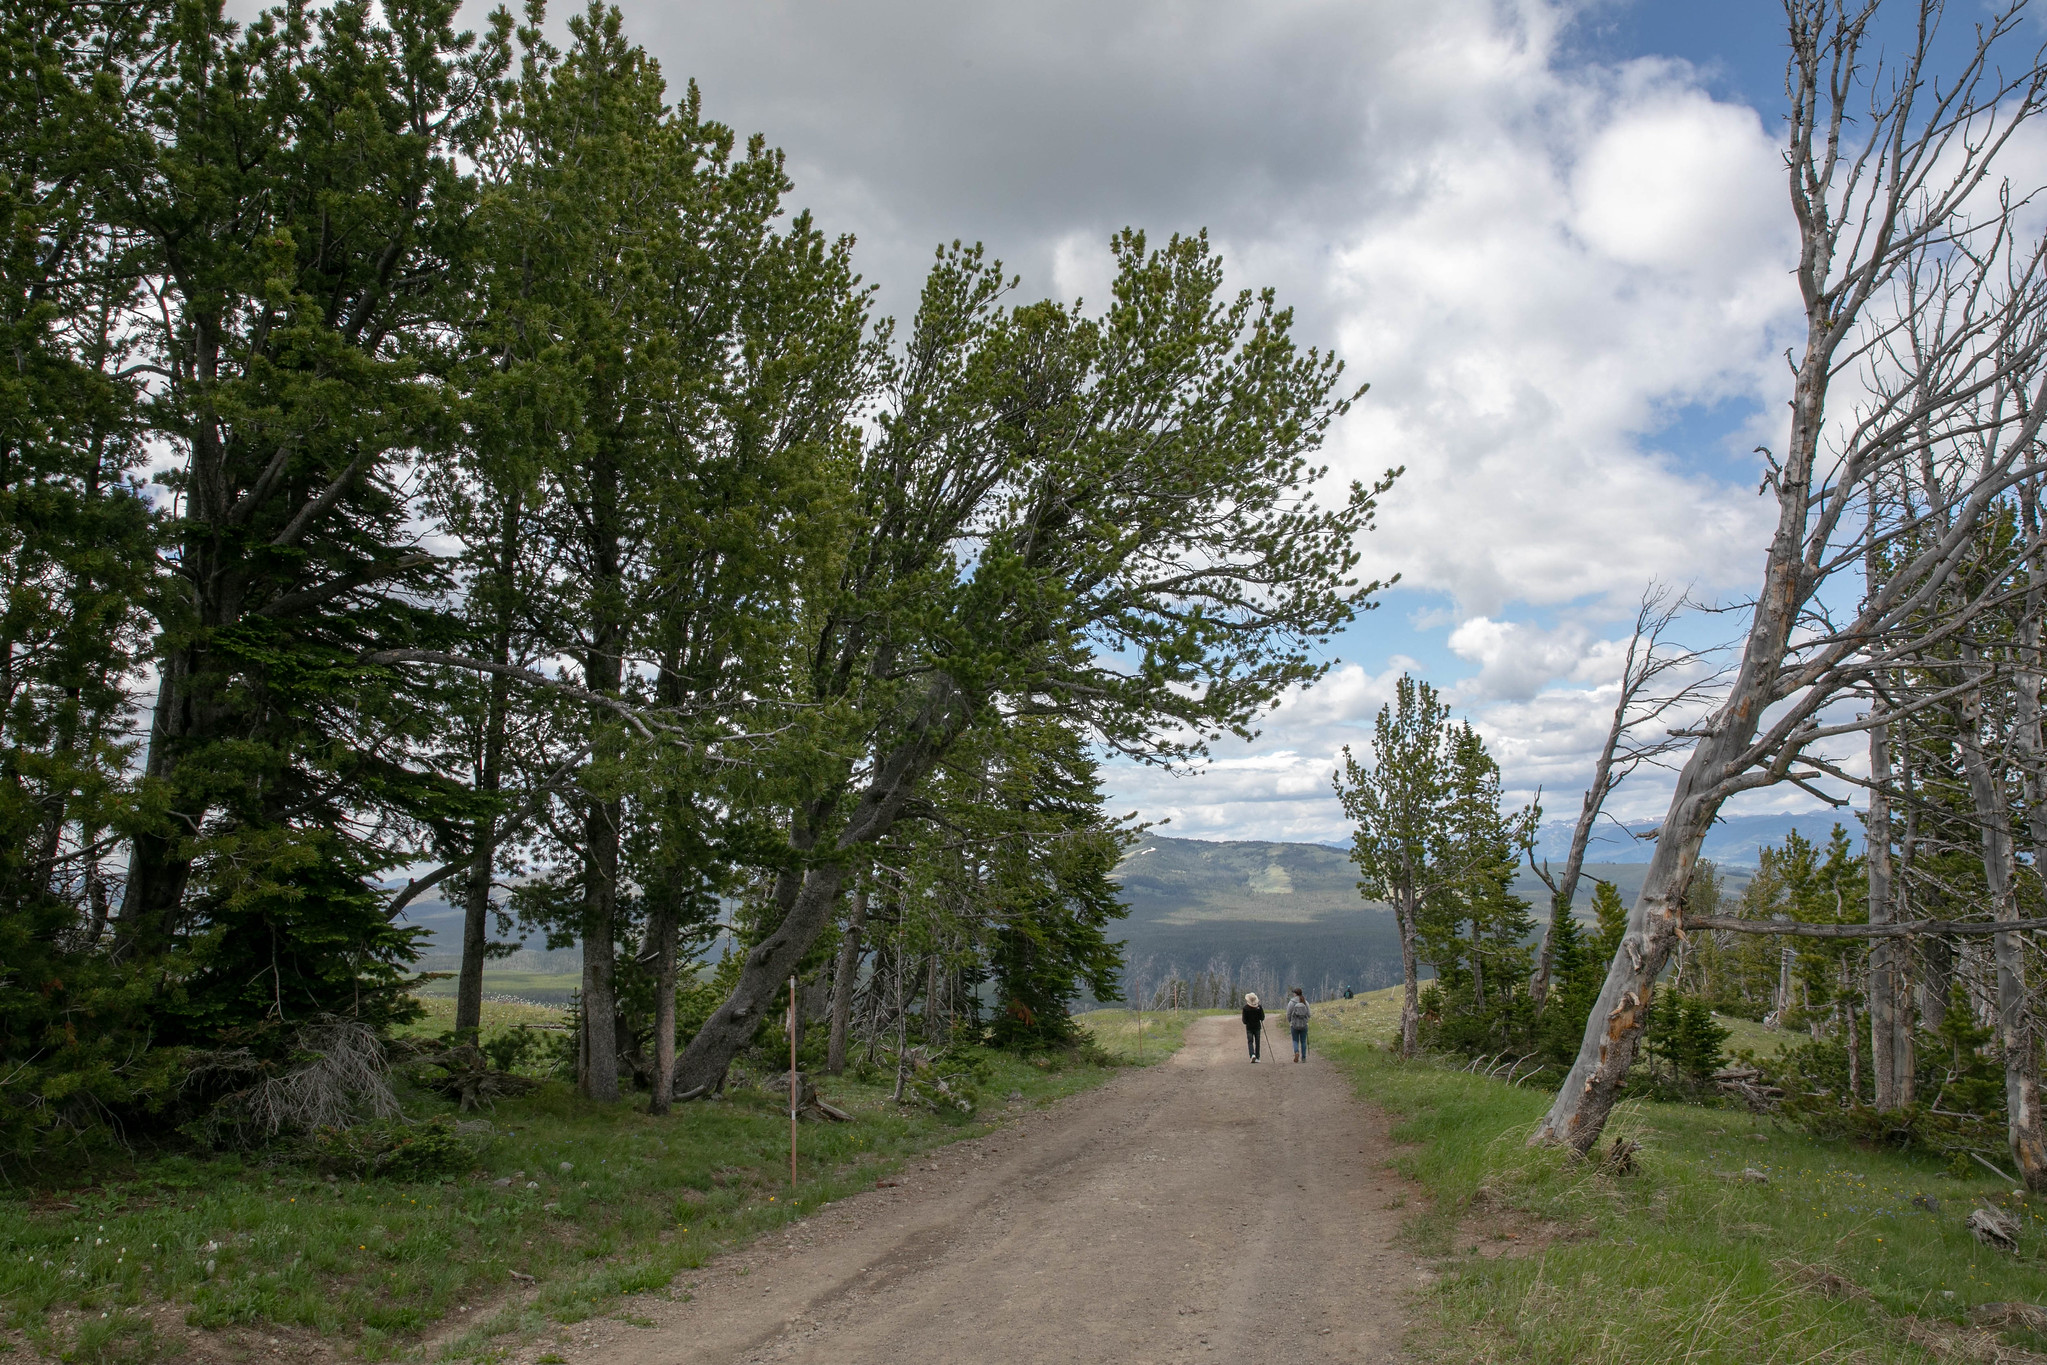 two hikers walking on a narrow dirt road